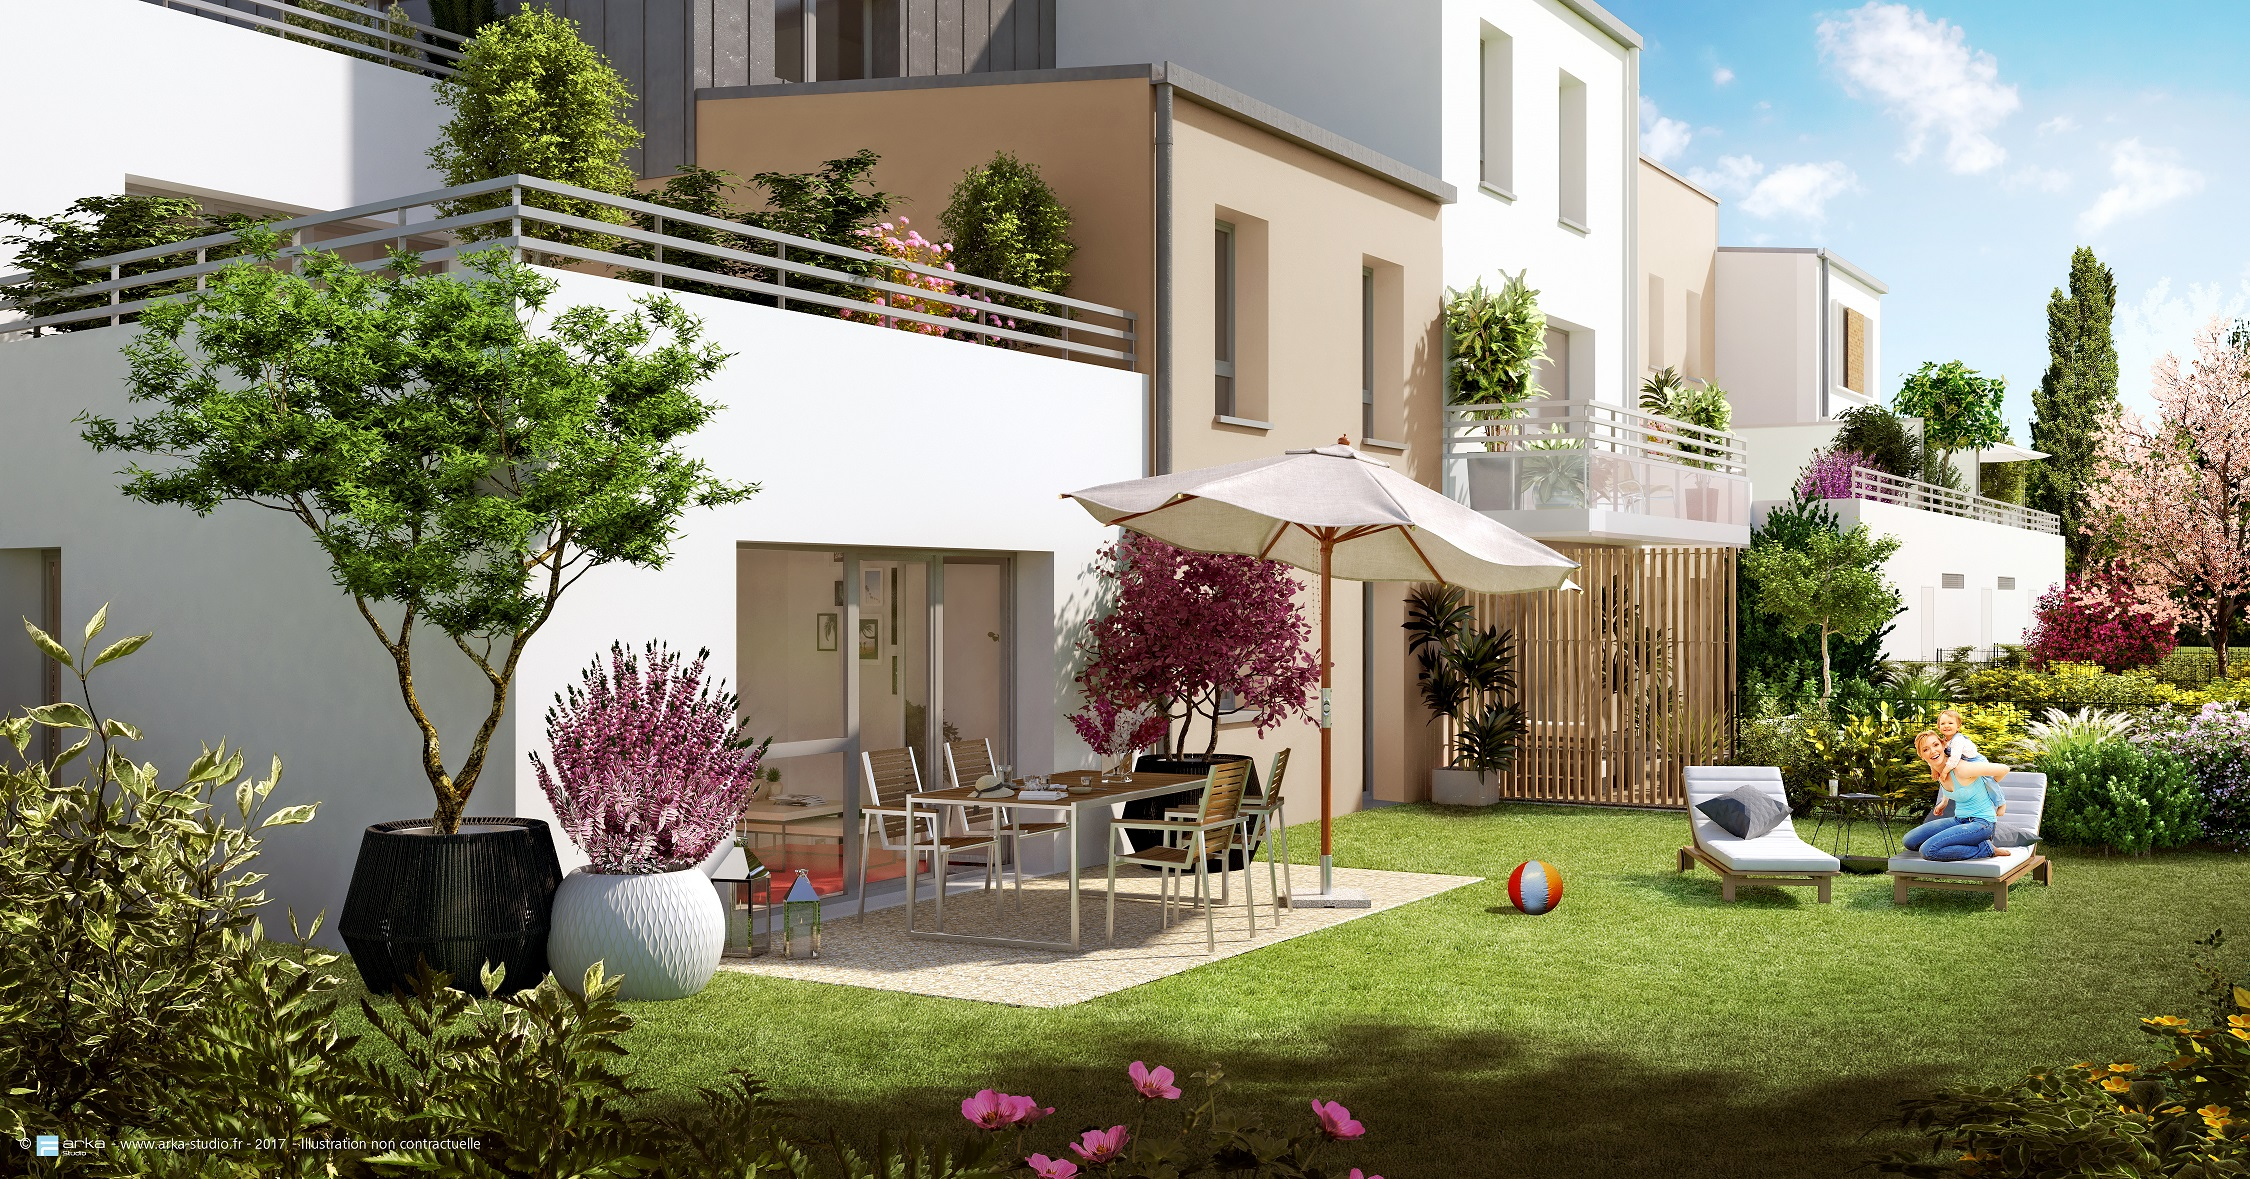 Garden city reims programme immobilier neuf reims 51100 plurial immo - Maison jardin morgan city reims ...